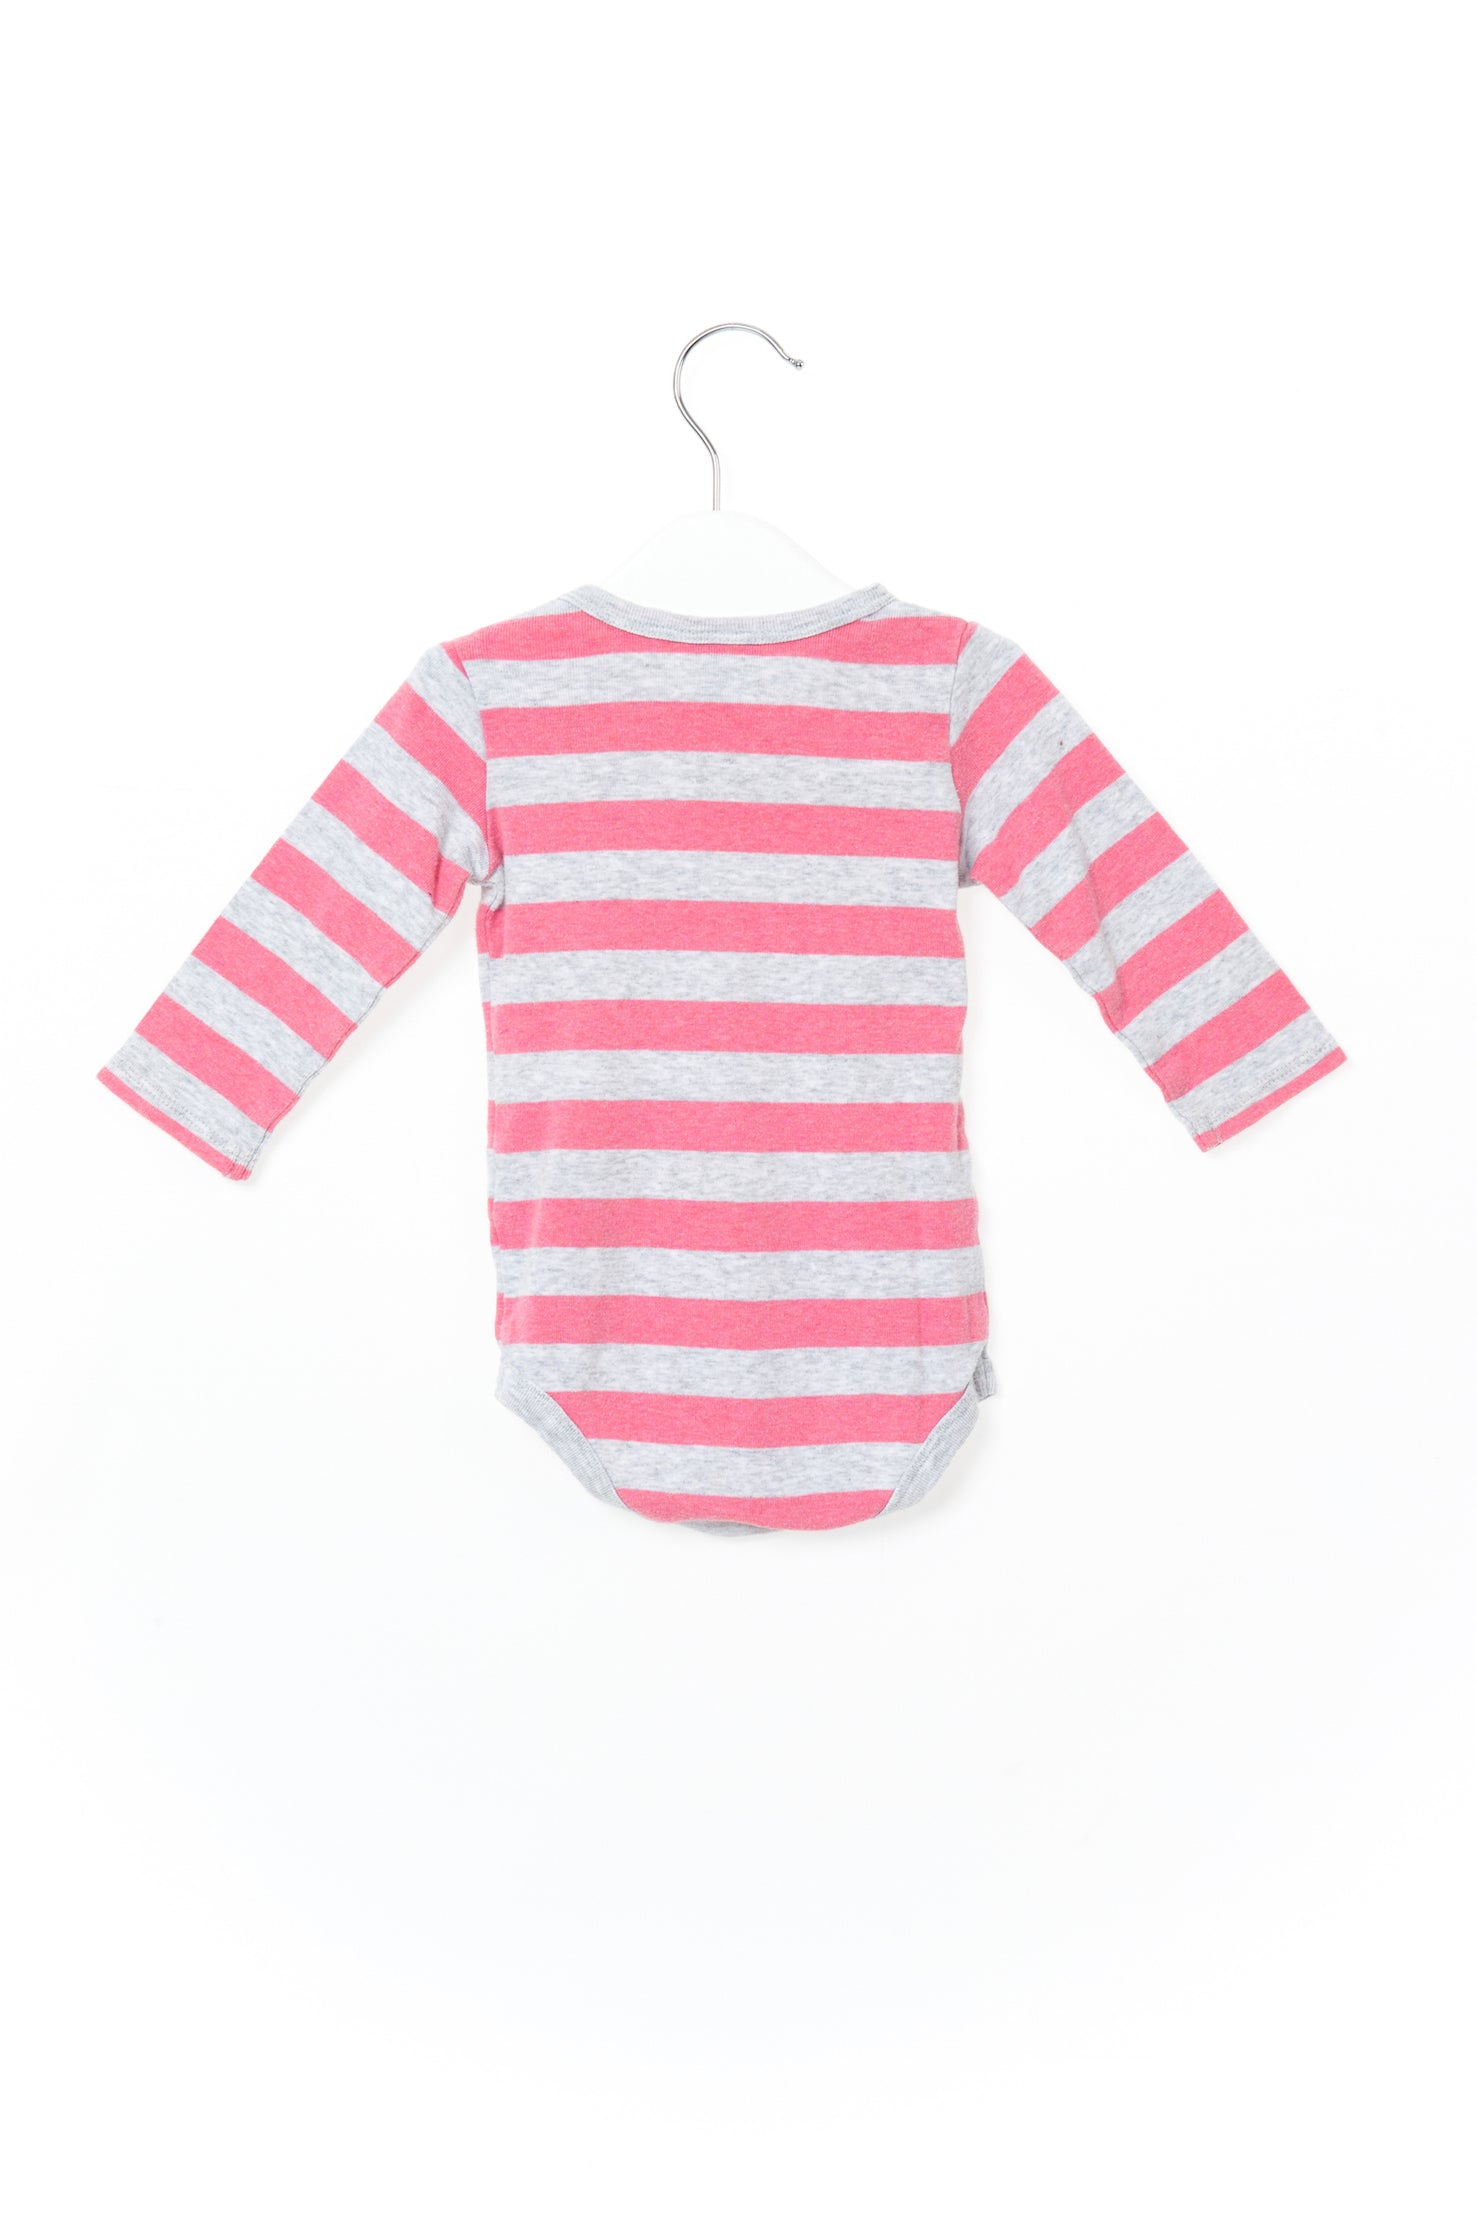 10001314 Seed Baby~Bodysuit, Top and Pants 3-6M, Seed Retykle | Online Baby & Kids Clothing Hong Kong